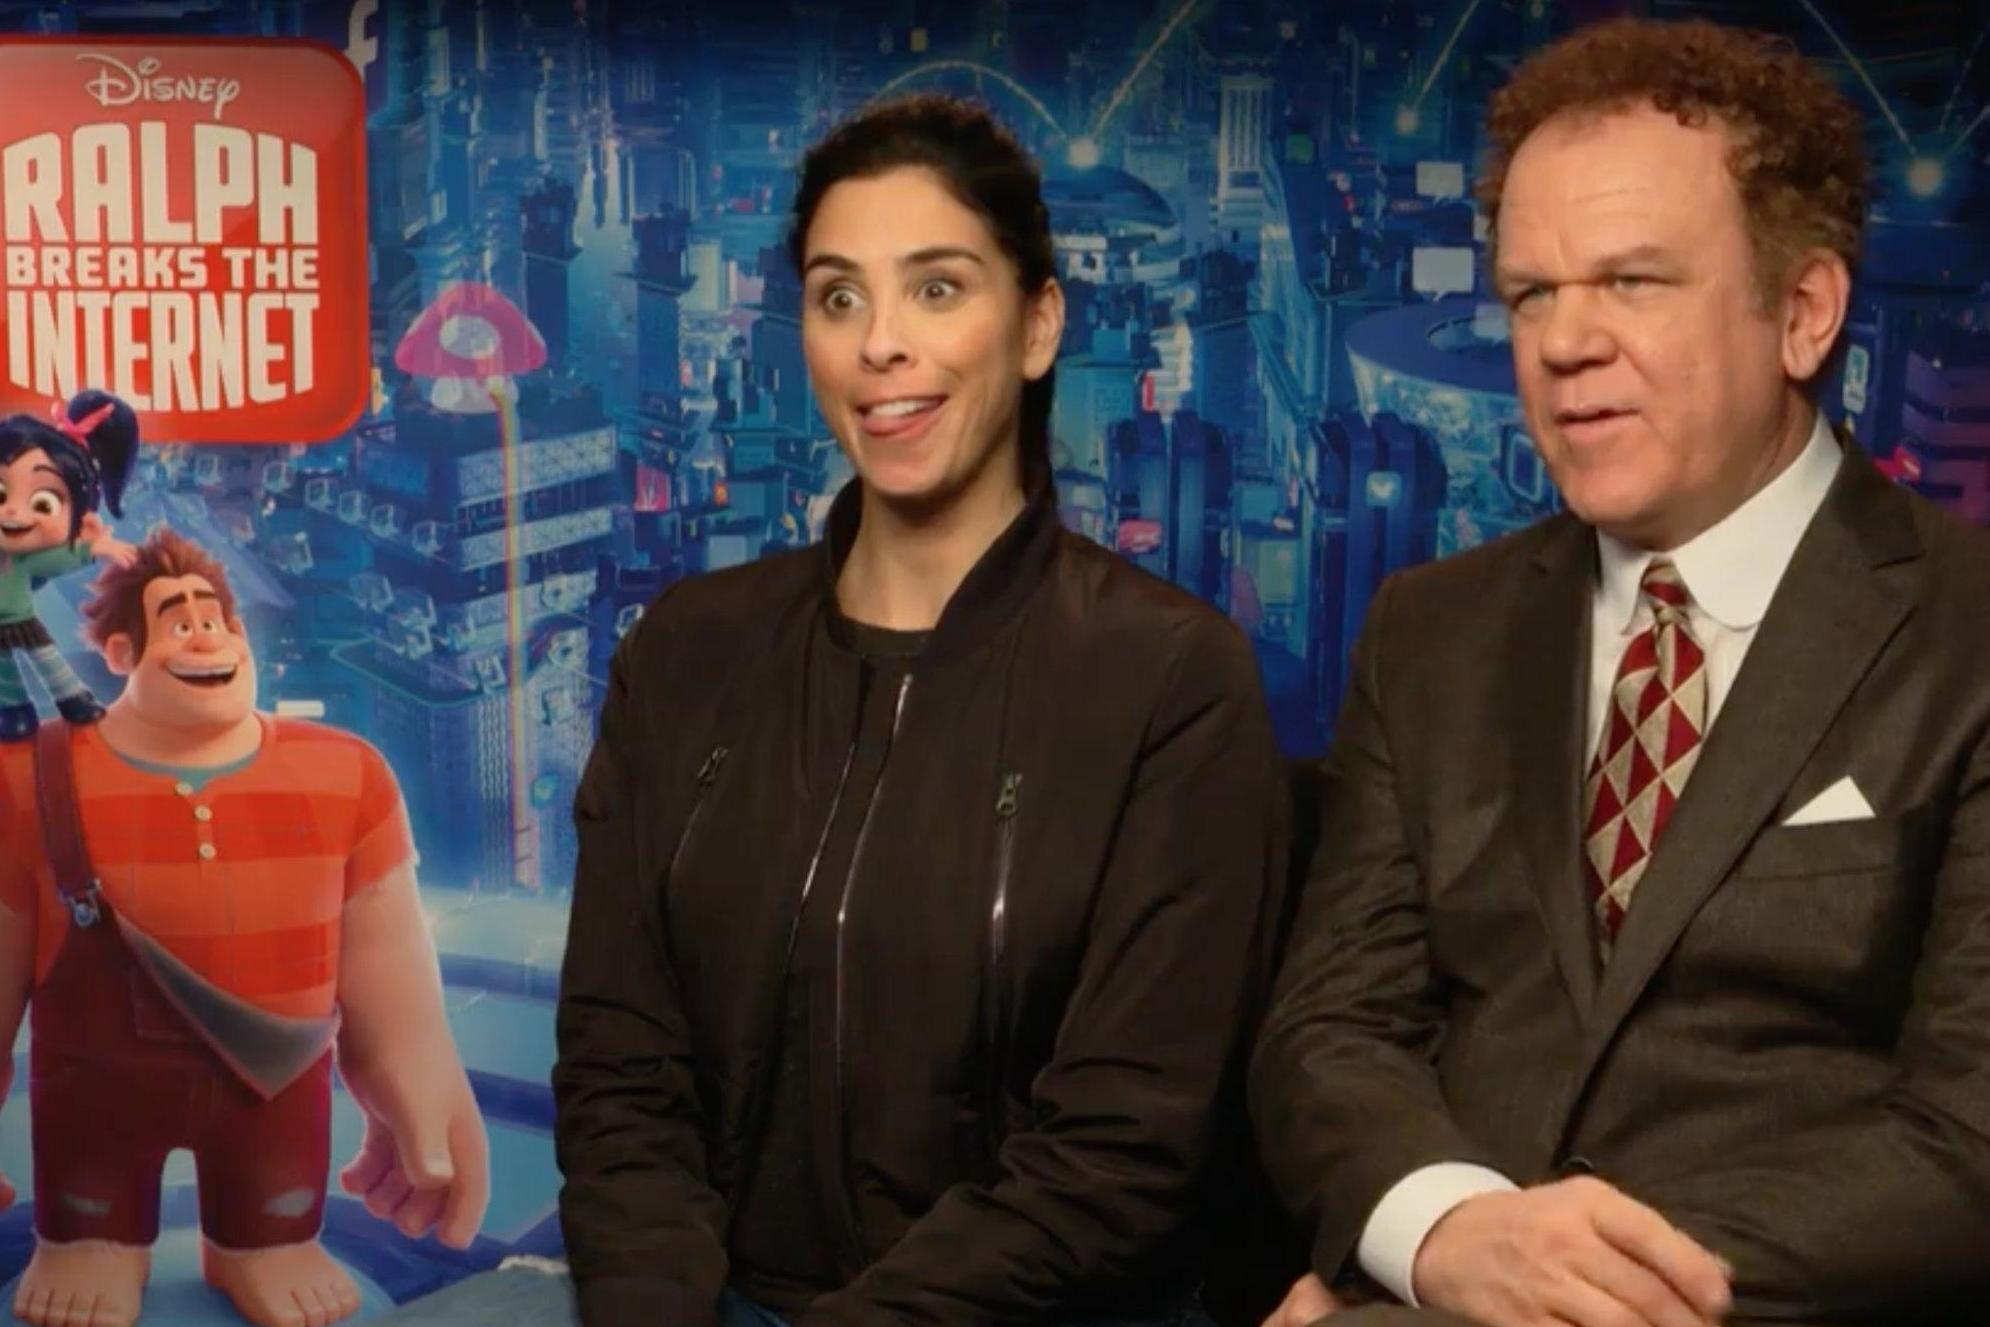 Ralph Breaks The Internet John C Reilly And Sarah Silverman Pitch Video Games About Each Other The Independent The Independent